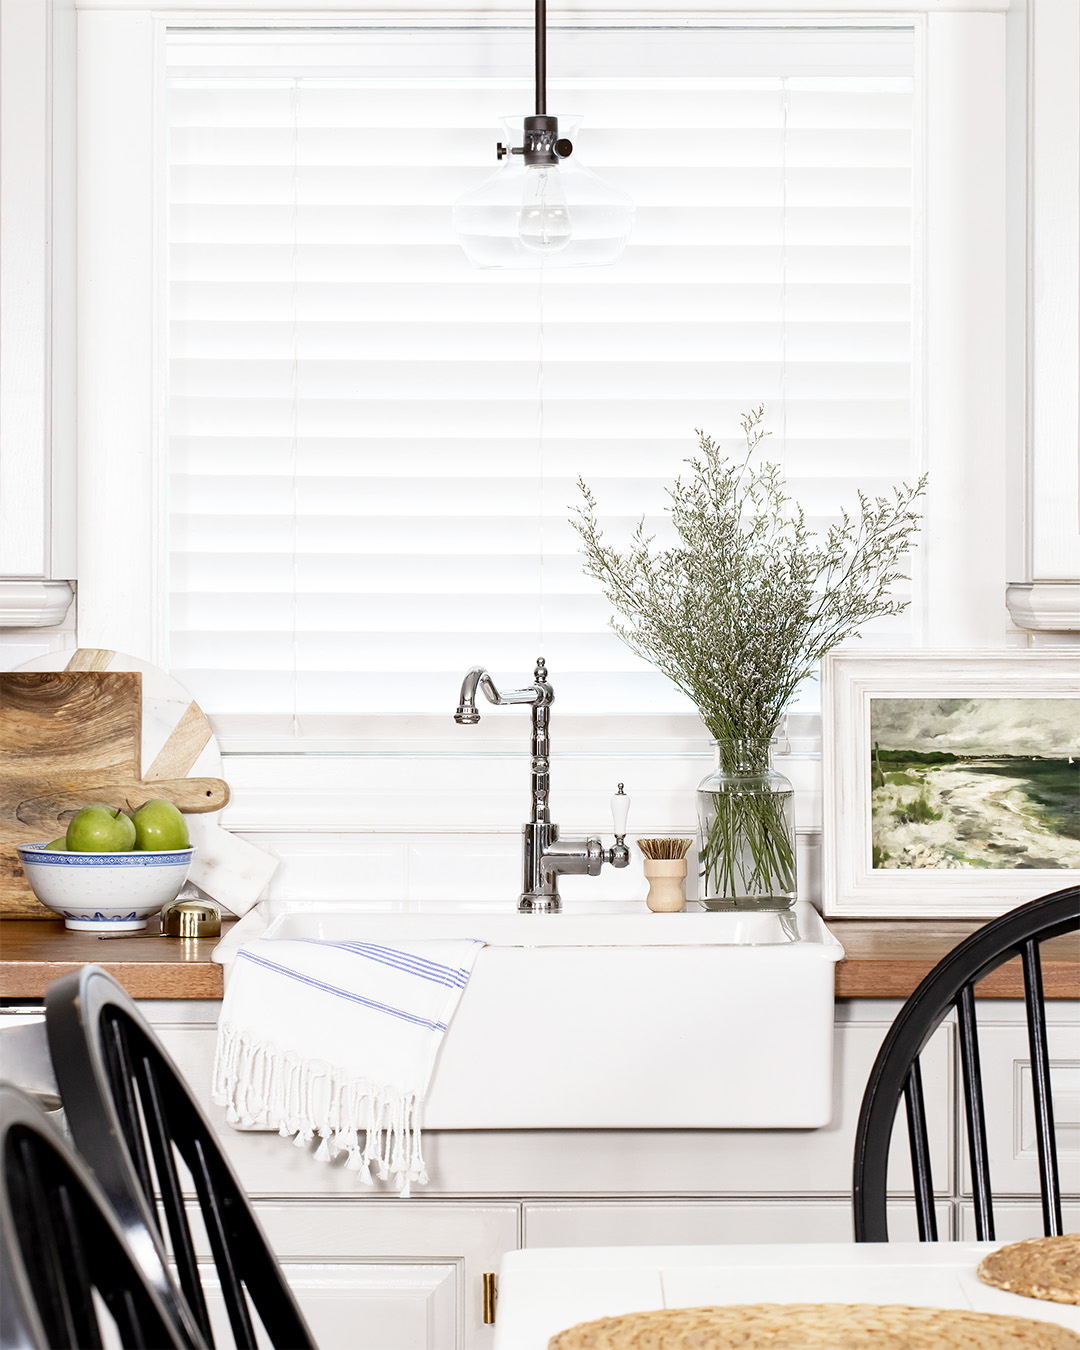 We've gotten so many questions about this IKEA farmhouse sink since we first installed it five years ago, so I thought it was time for an update!